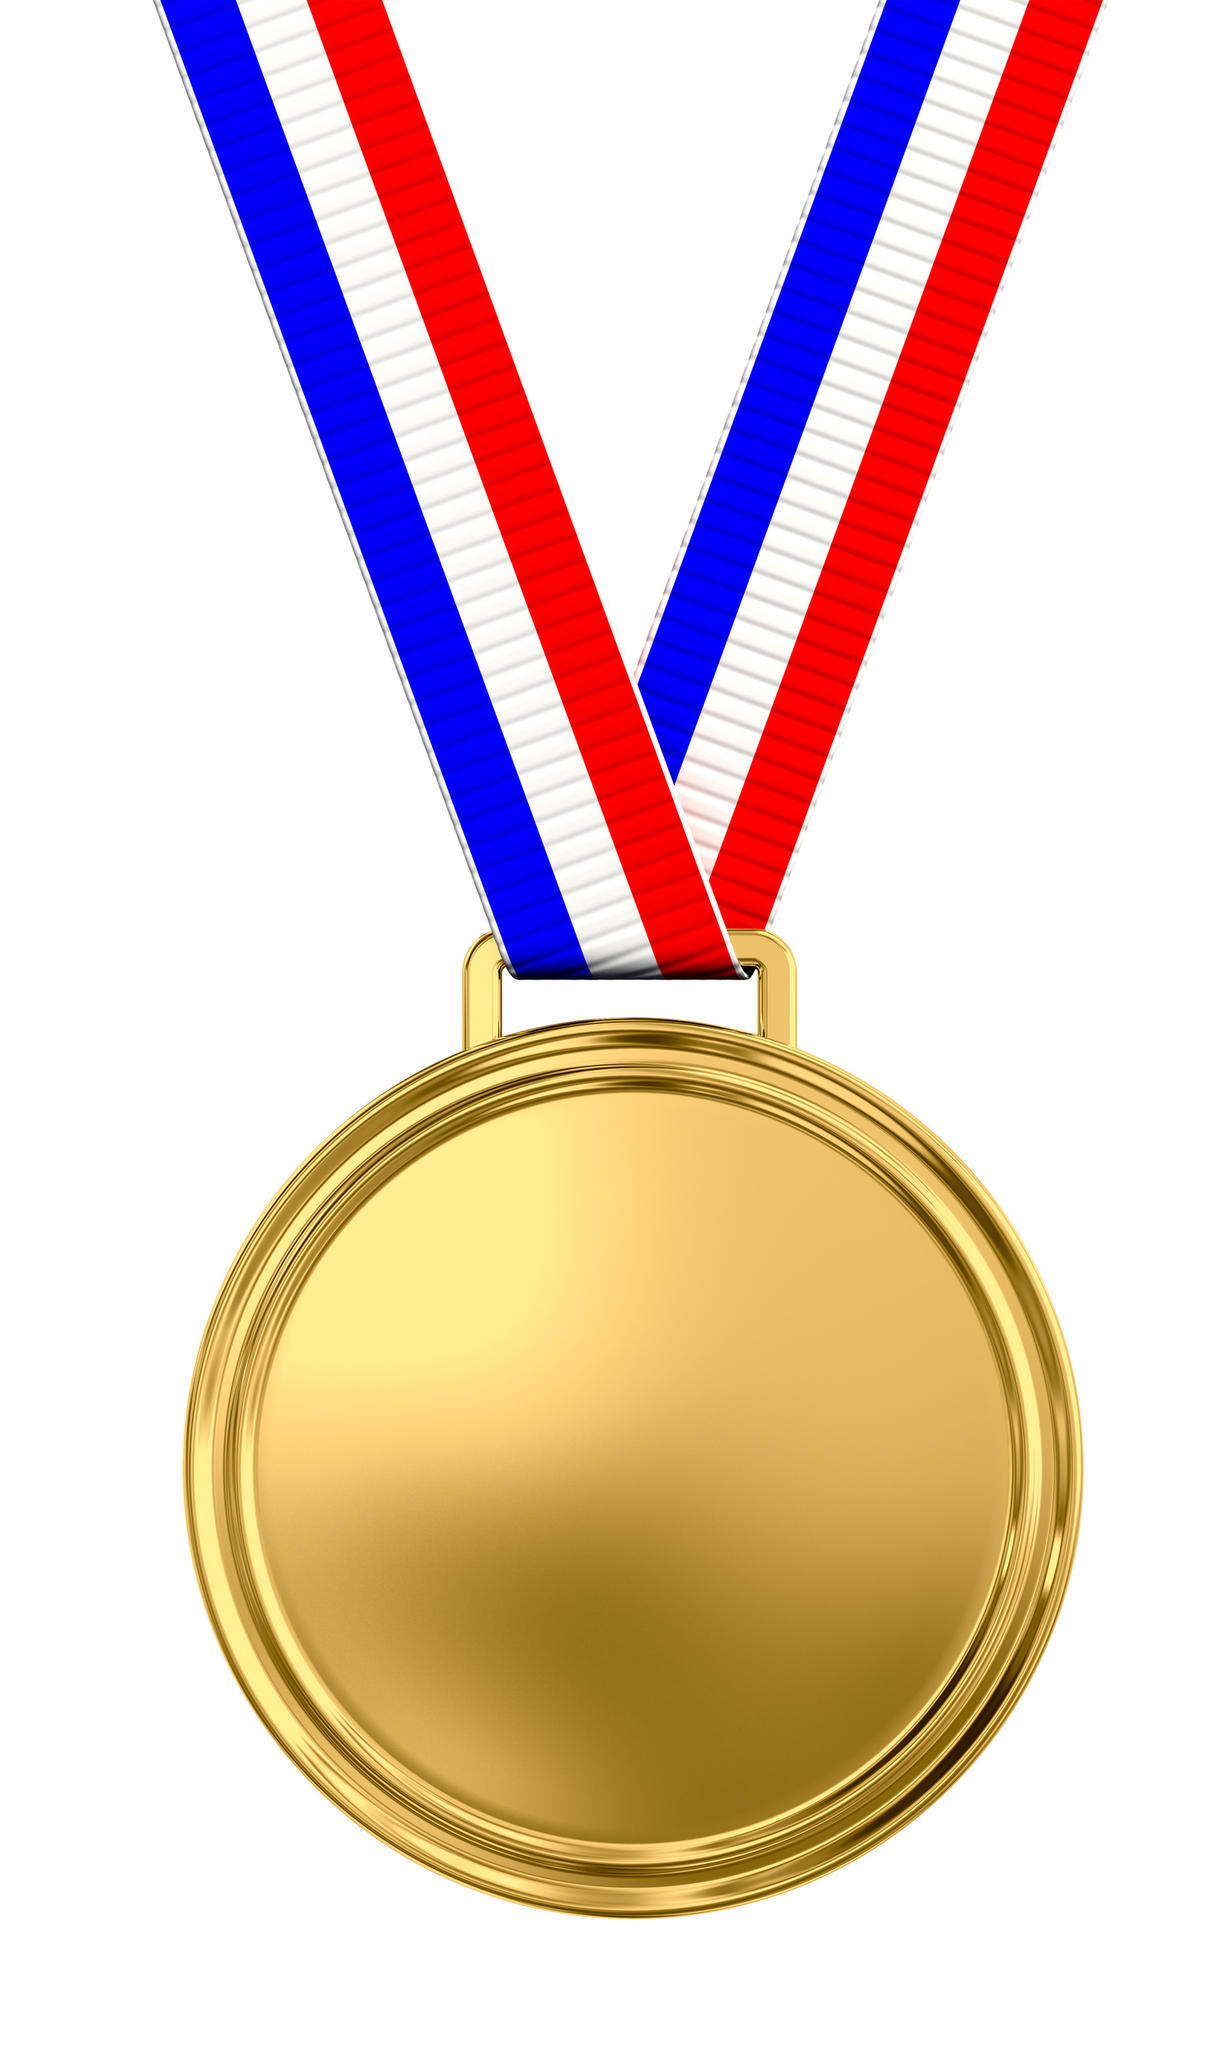 Overwatch gold medal png, Picture #2226198 overwatch gold.